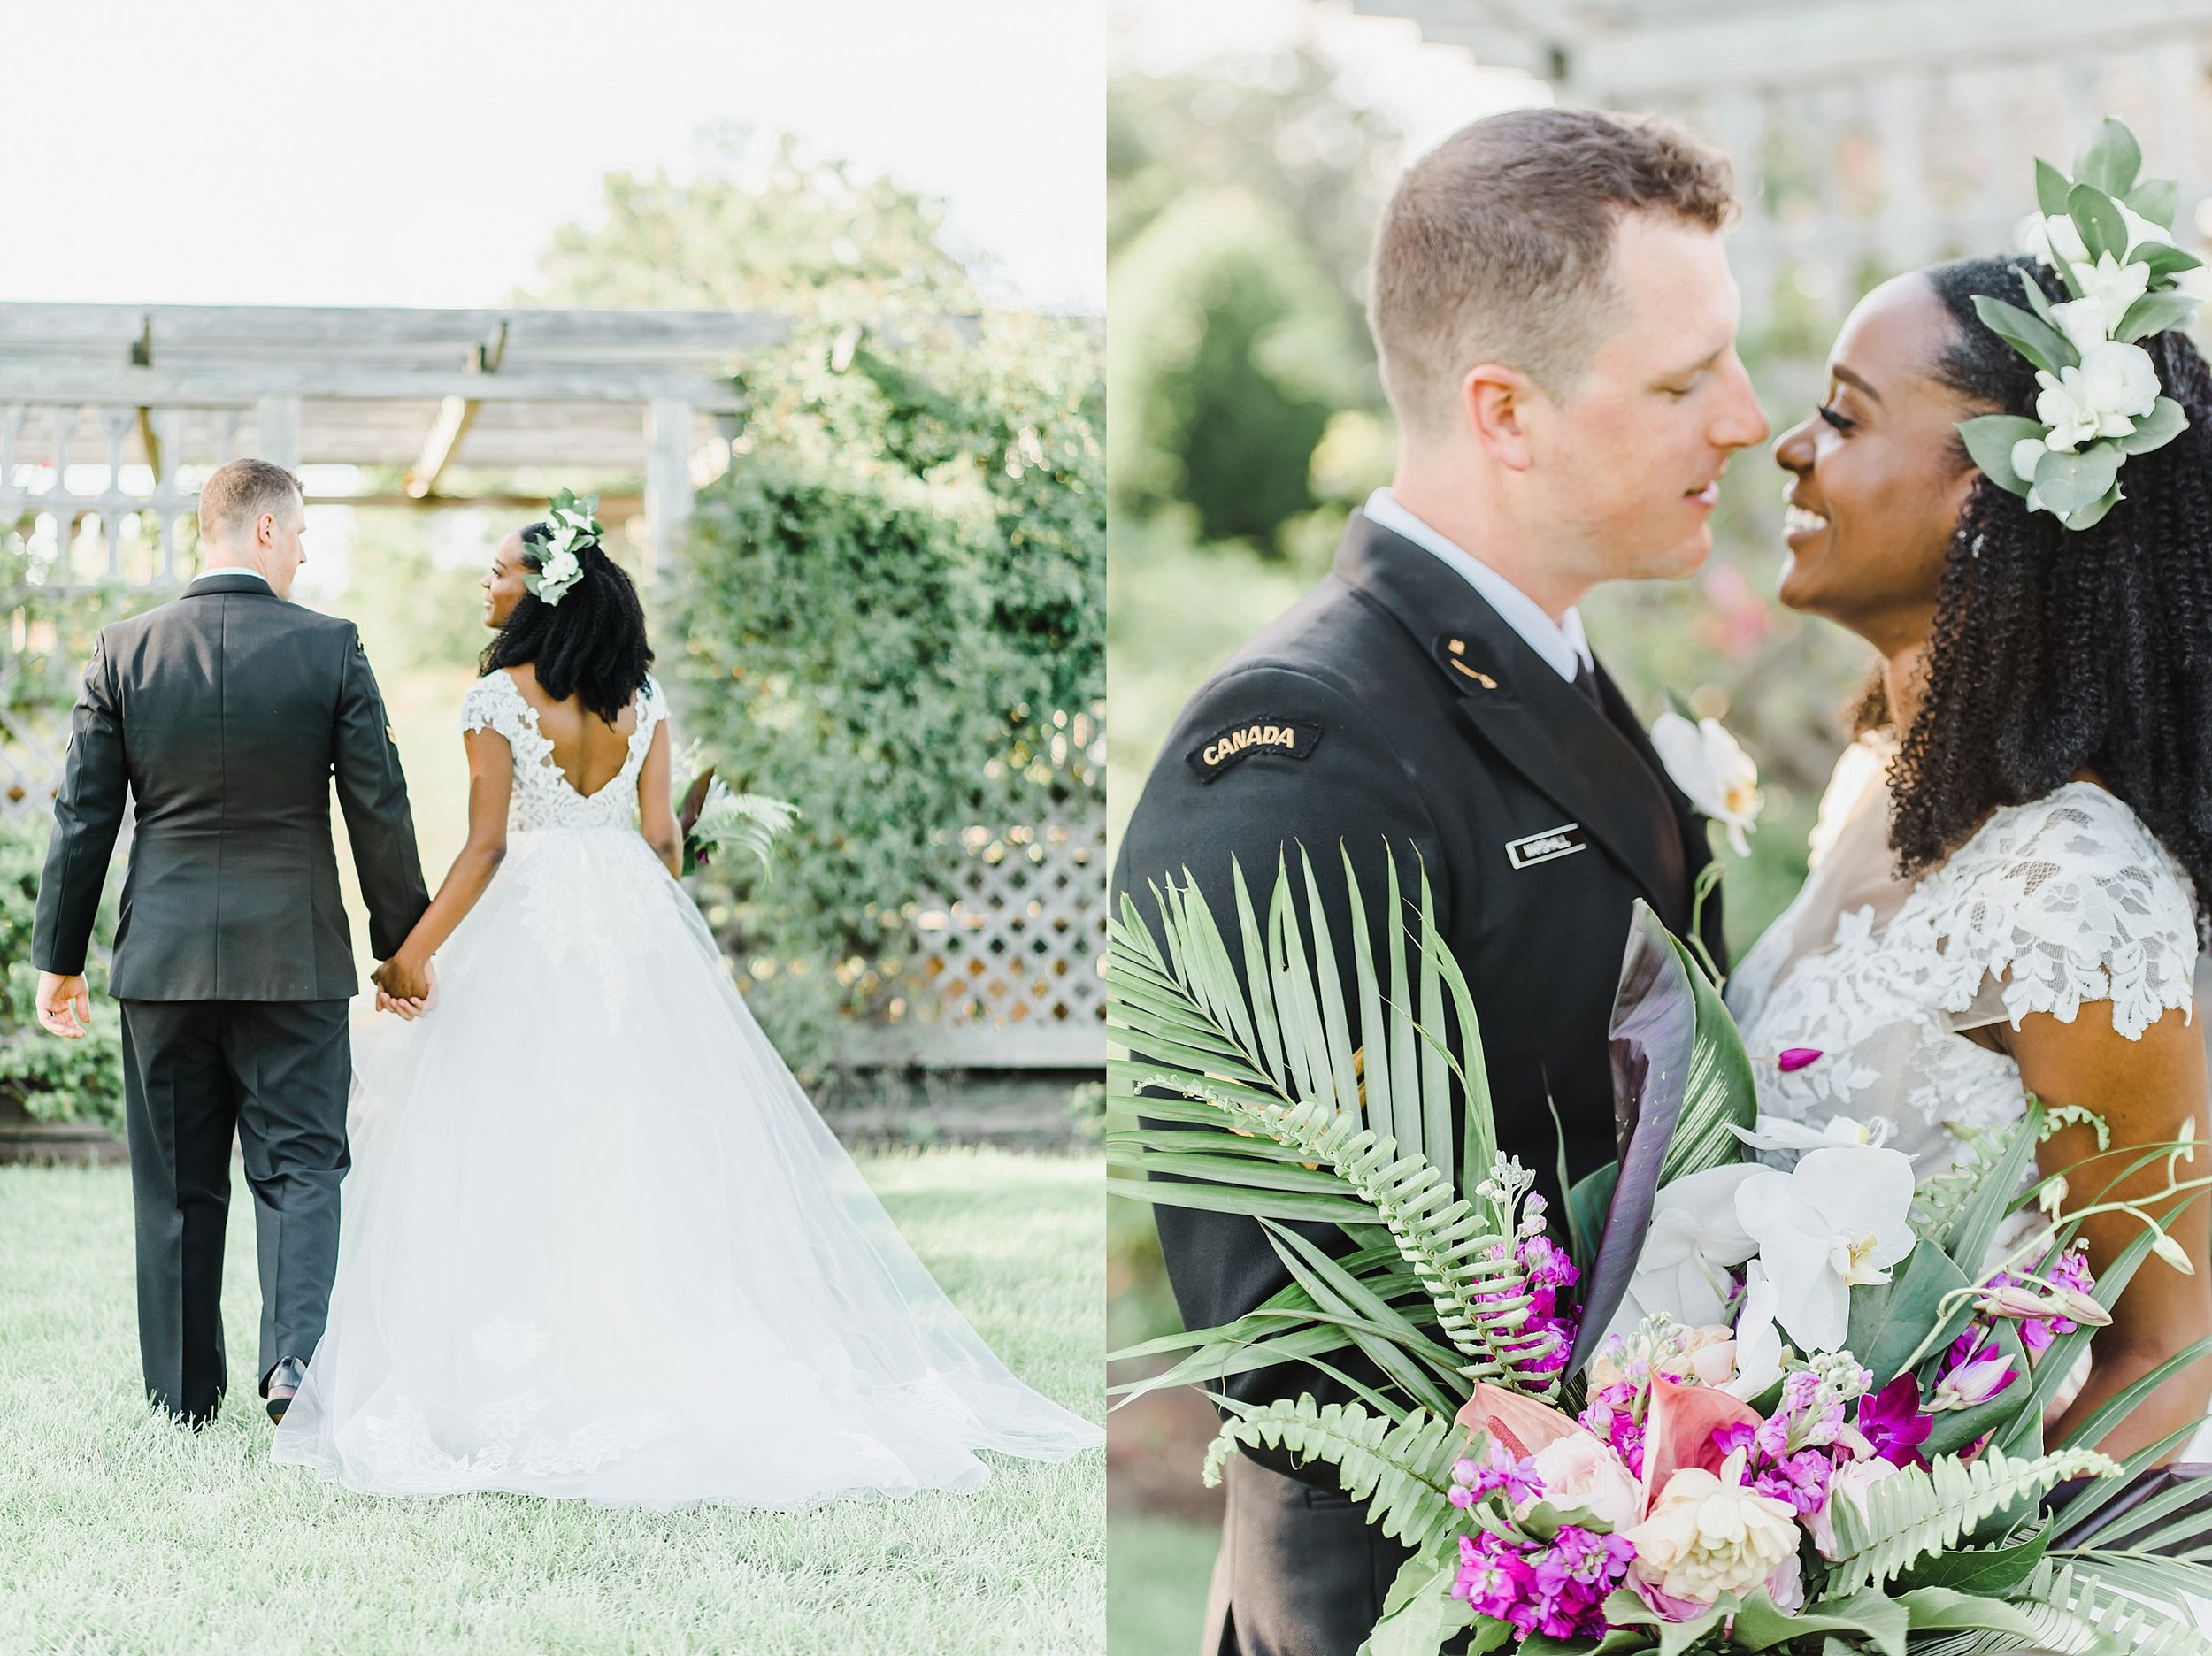 We had a few minutes left to capture my absolute favourite part of the day, the bride and groom portraits.